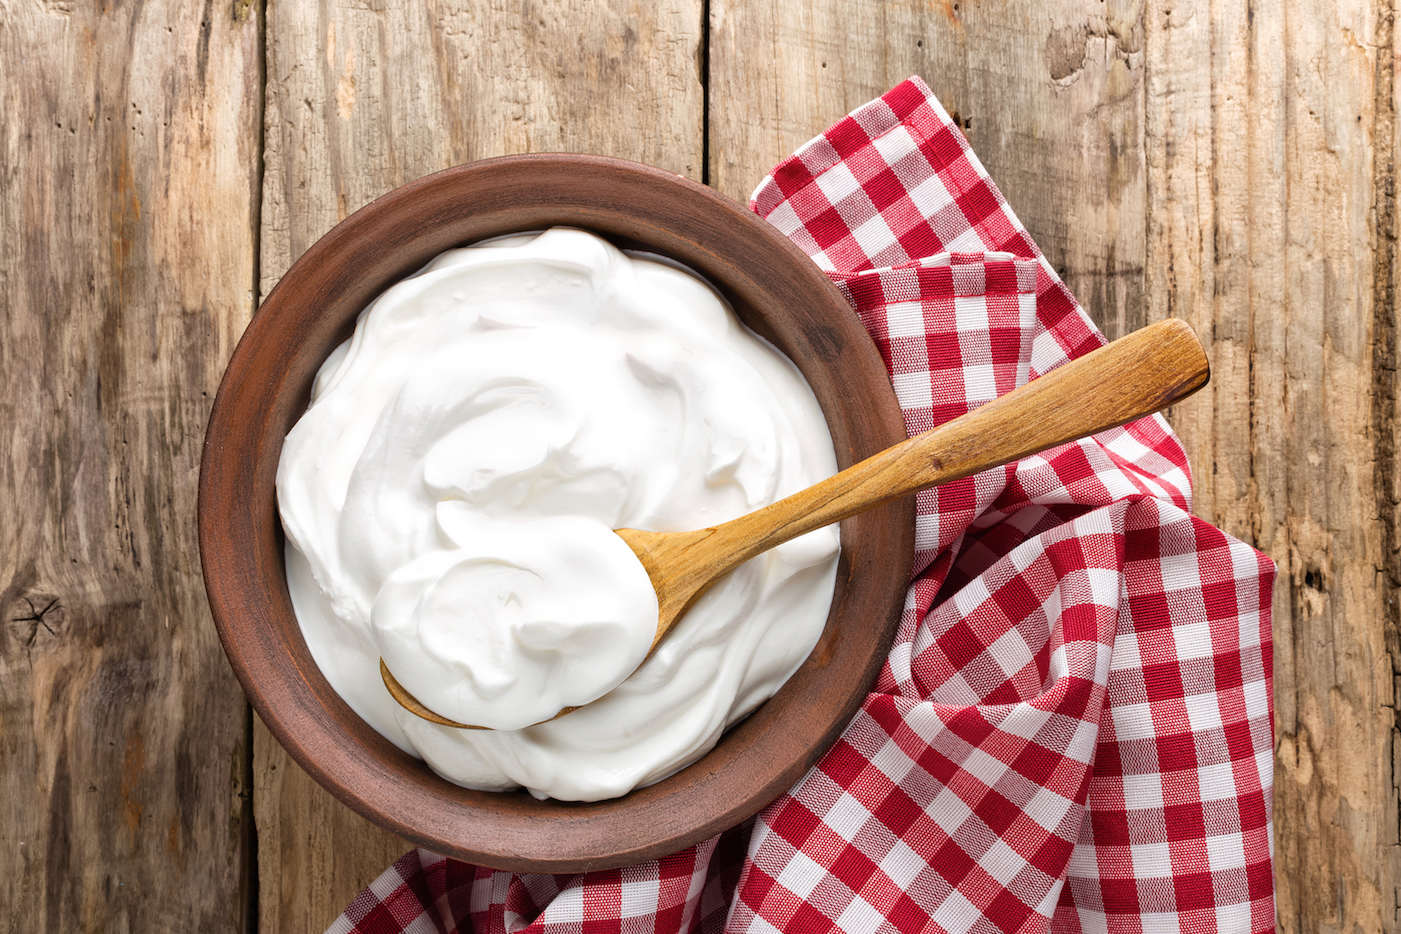 We know yogurt is good for digestion, but today's Video of the Day explains how a probiotic found in yogurt can actually reverse symptoms of depression.